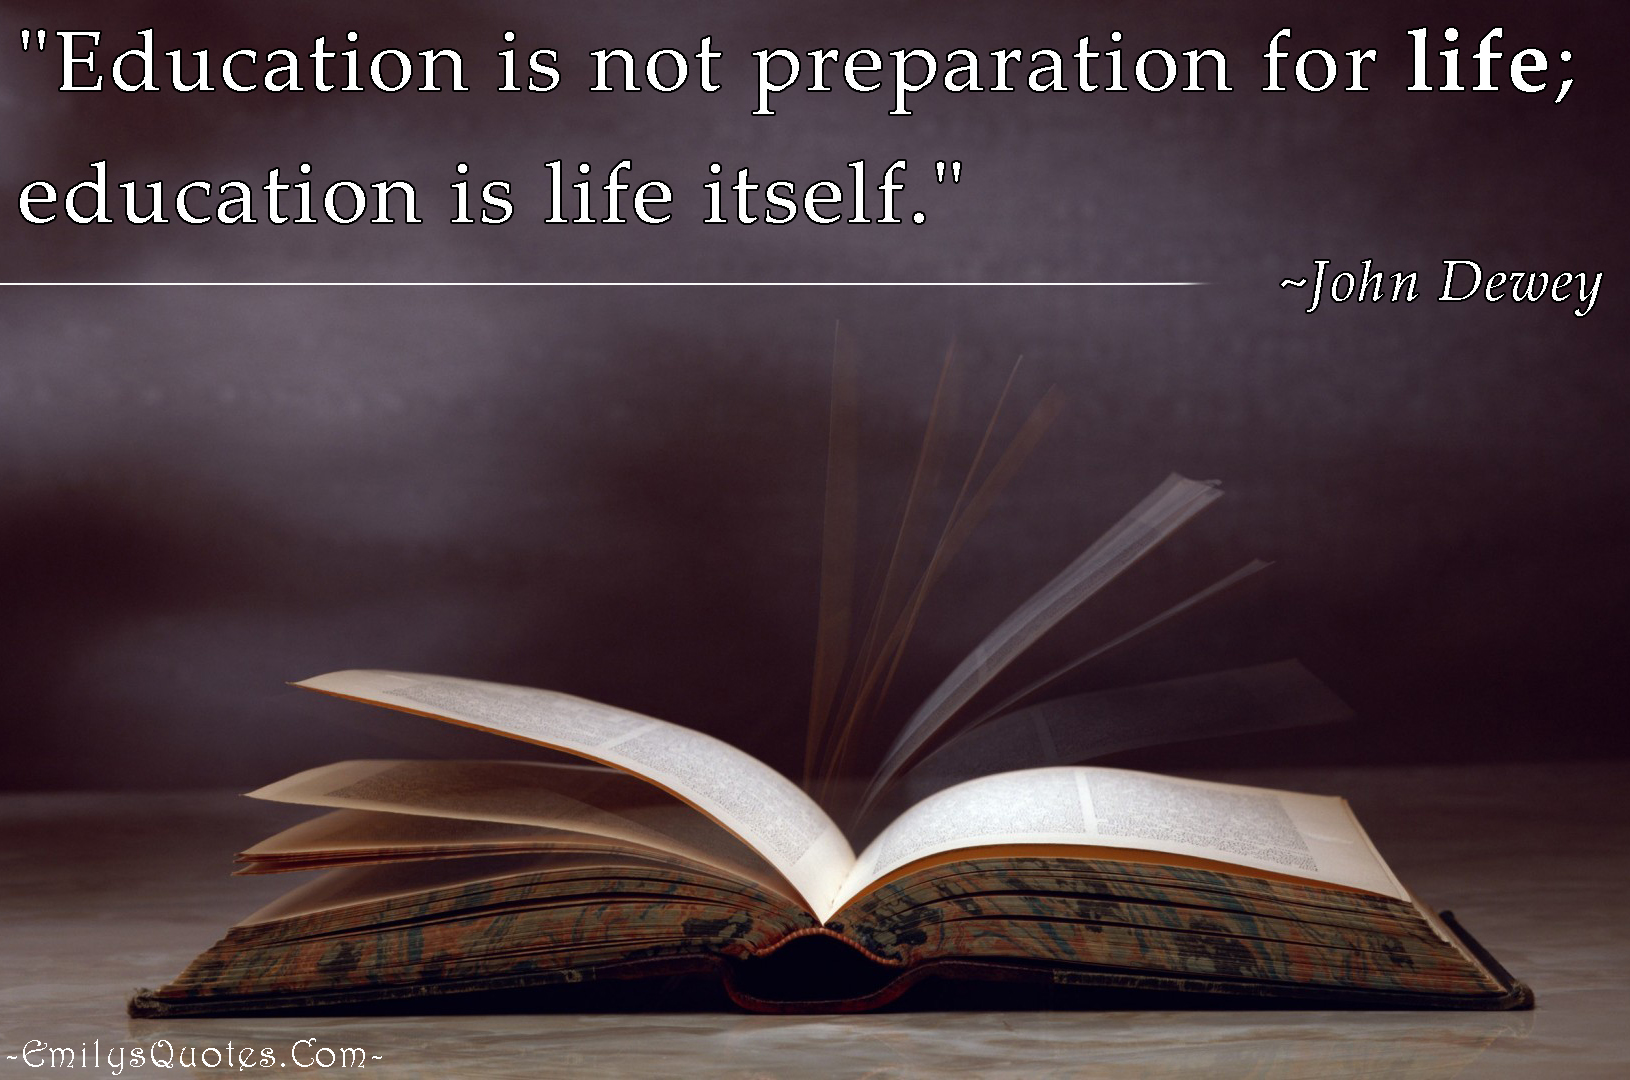 Life Education Quotes Inspiration Education Is Not Preparation For Life Education Is Life Itself